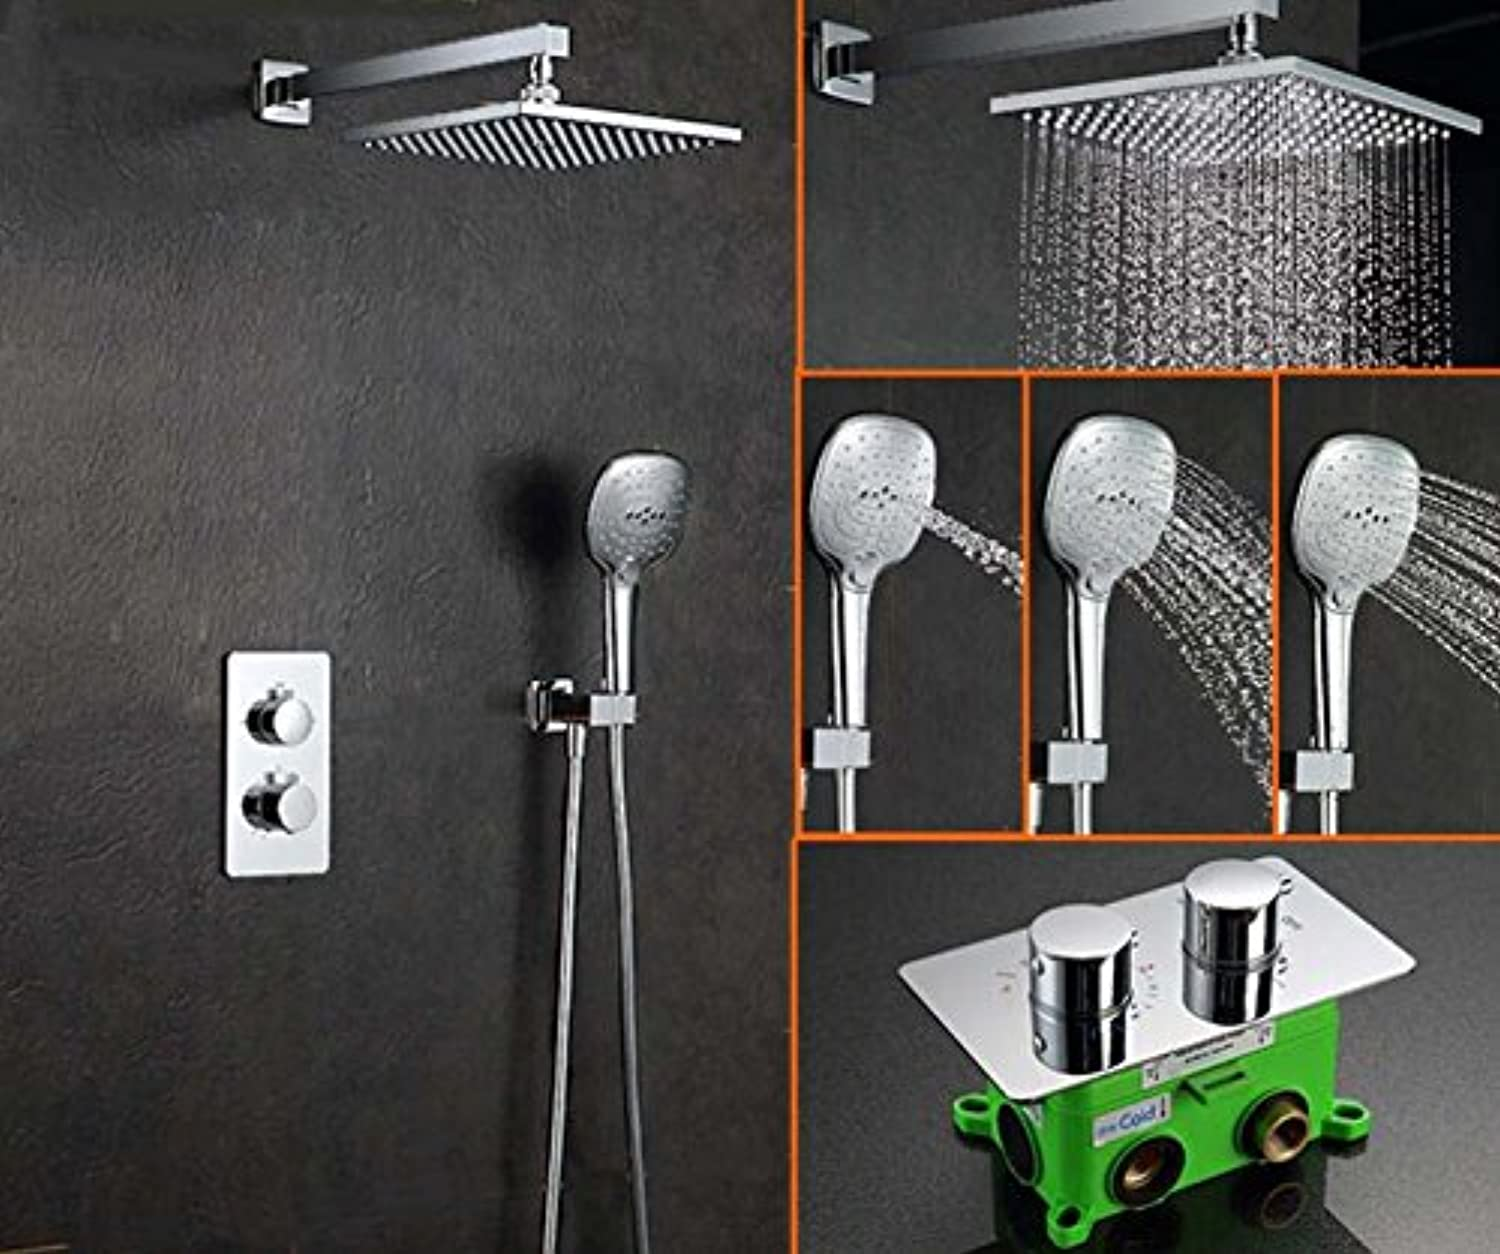 Free shipping In-Wall Faucet Two Functions Embedded Box Thermostatic Mixer Valve 10 inch Shower Set with Shower Head SS052